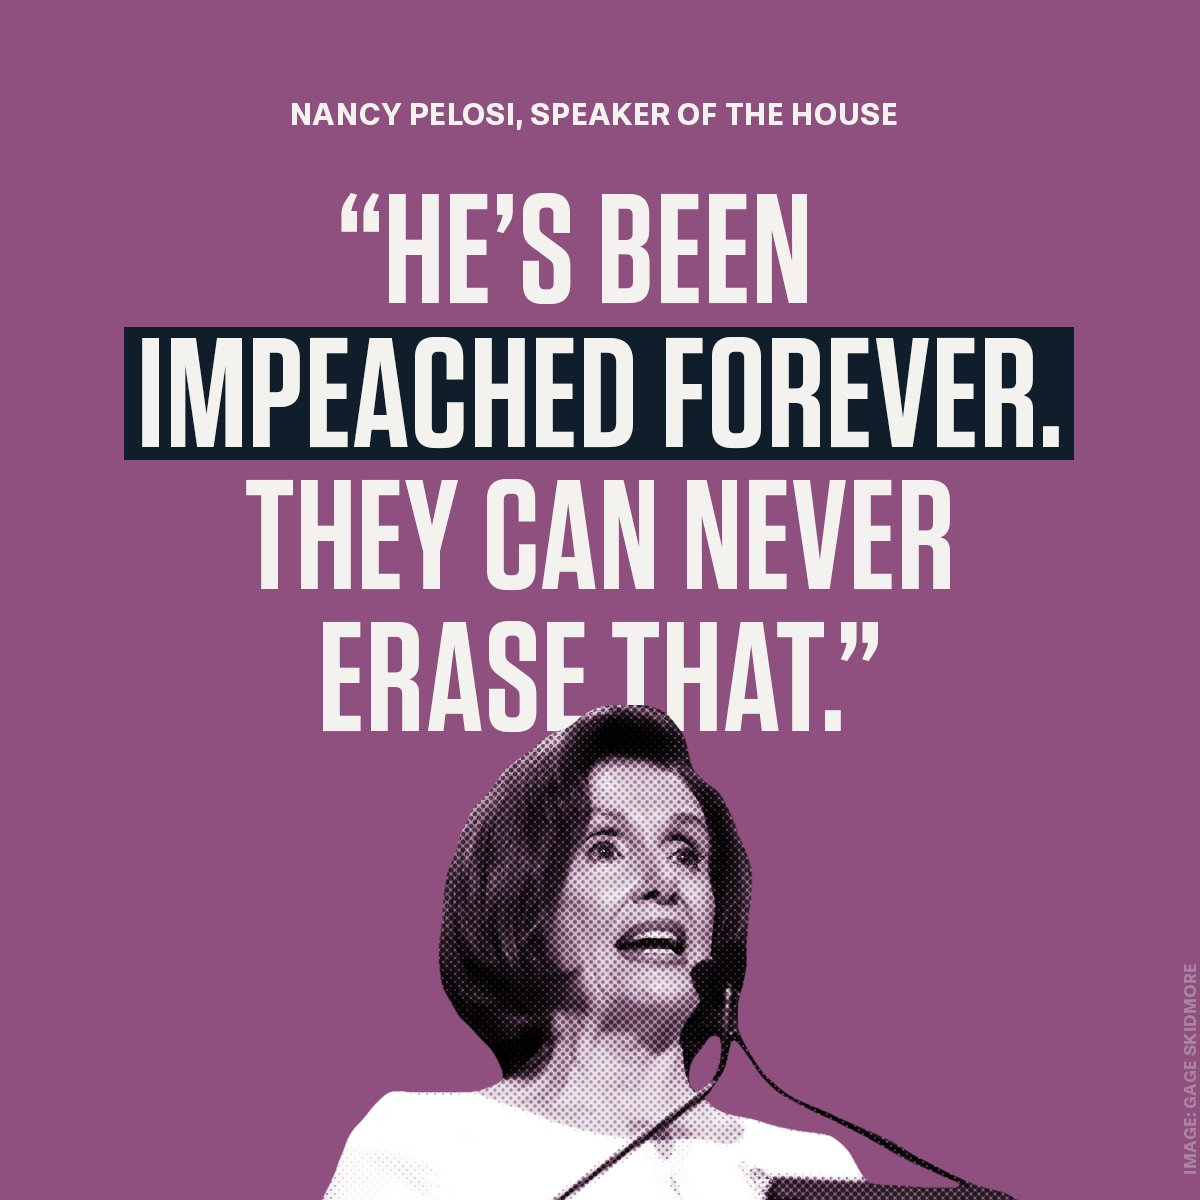 Never forget: Impeachment is forever. #RNC2020